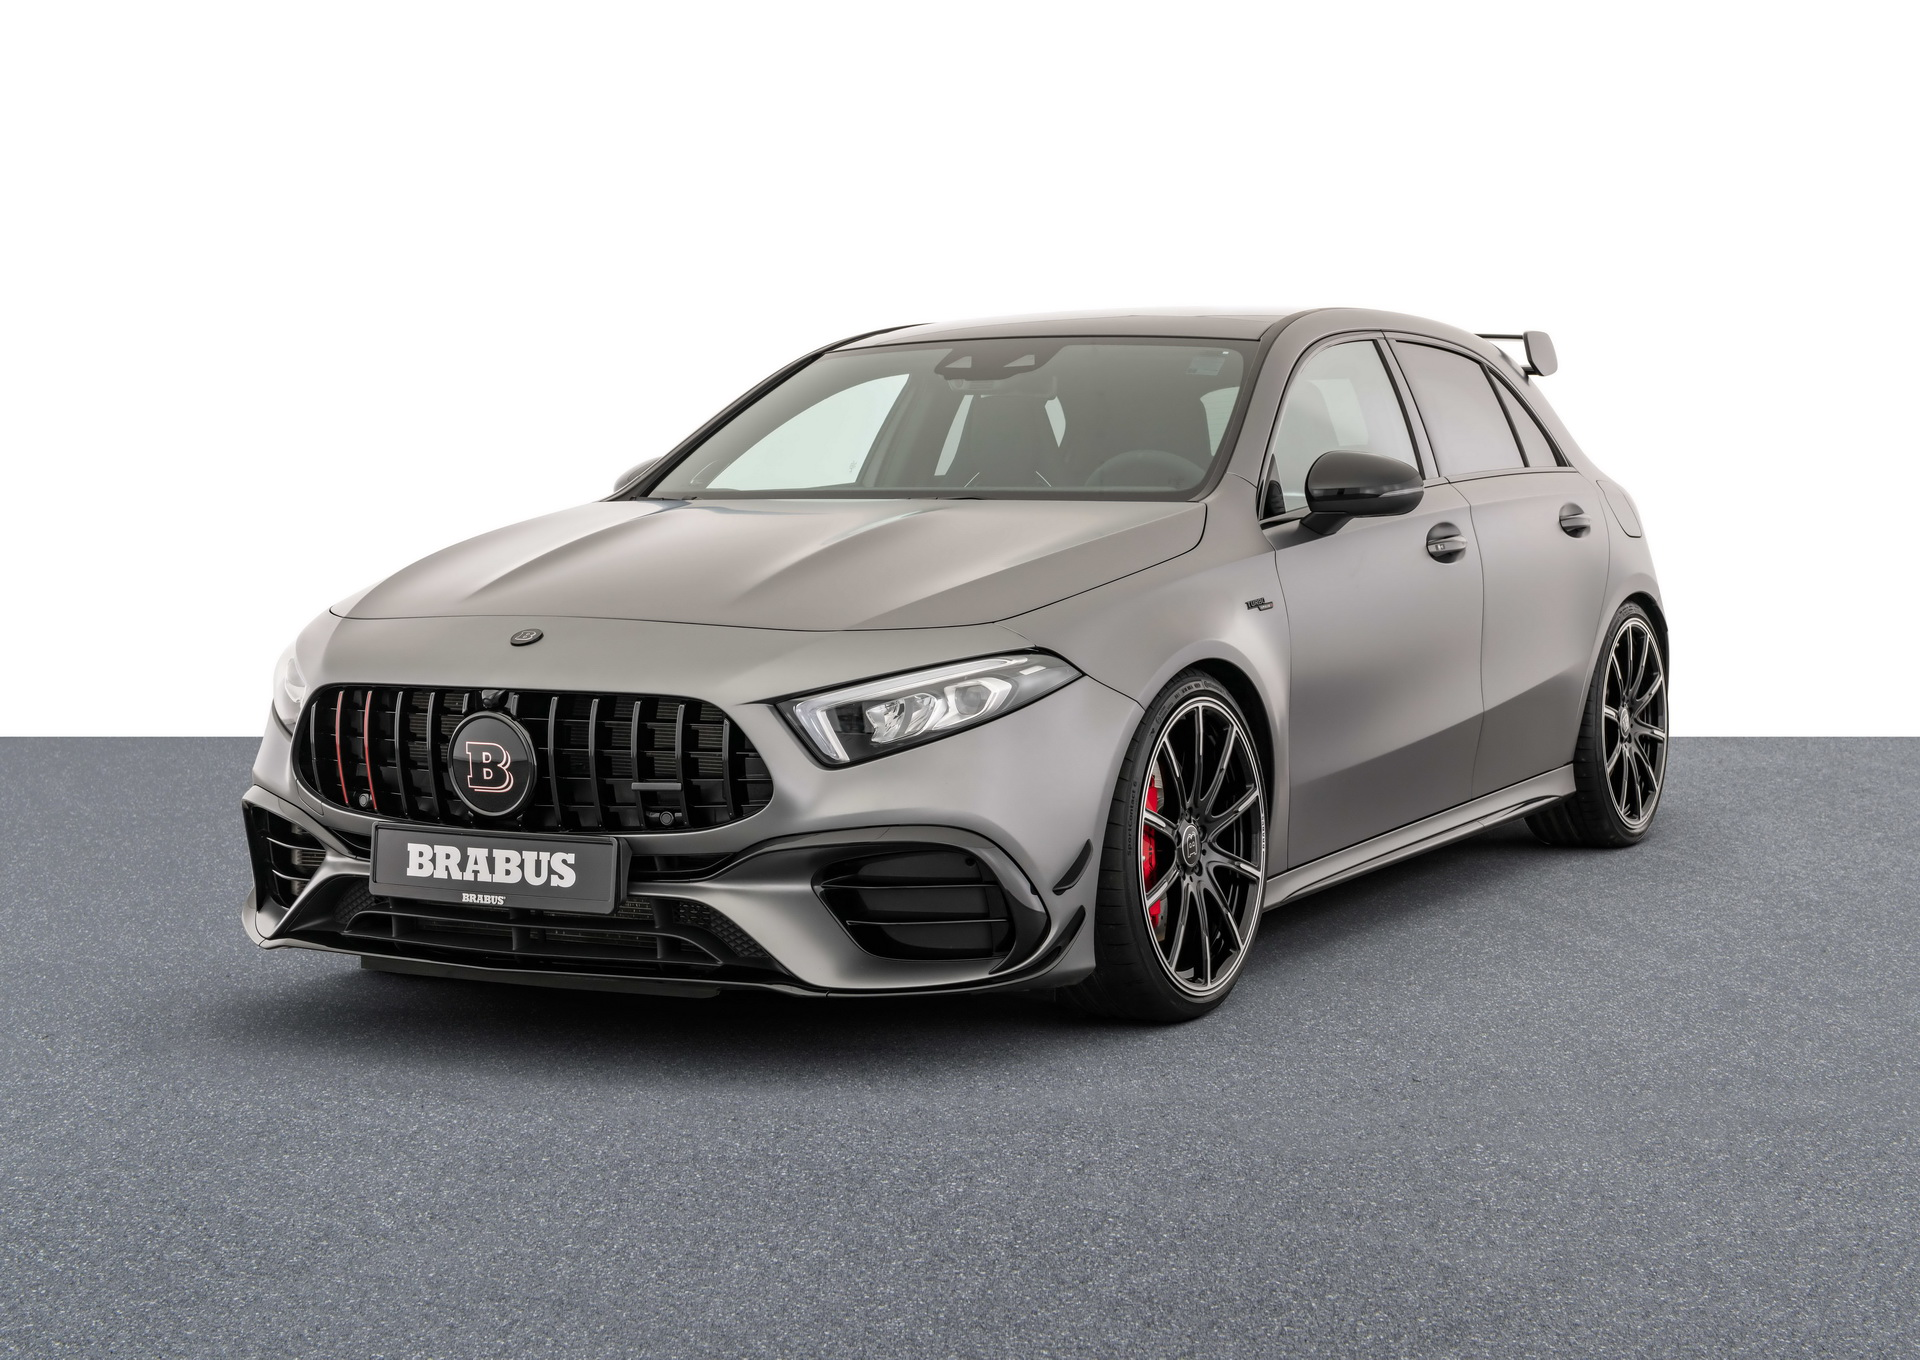 At the beginning of the year, Brabus announced a tuning kit for the latest-gen Mercedes-AMG A45 S, but the pricing details have not been revealed until now.